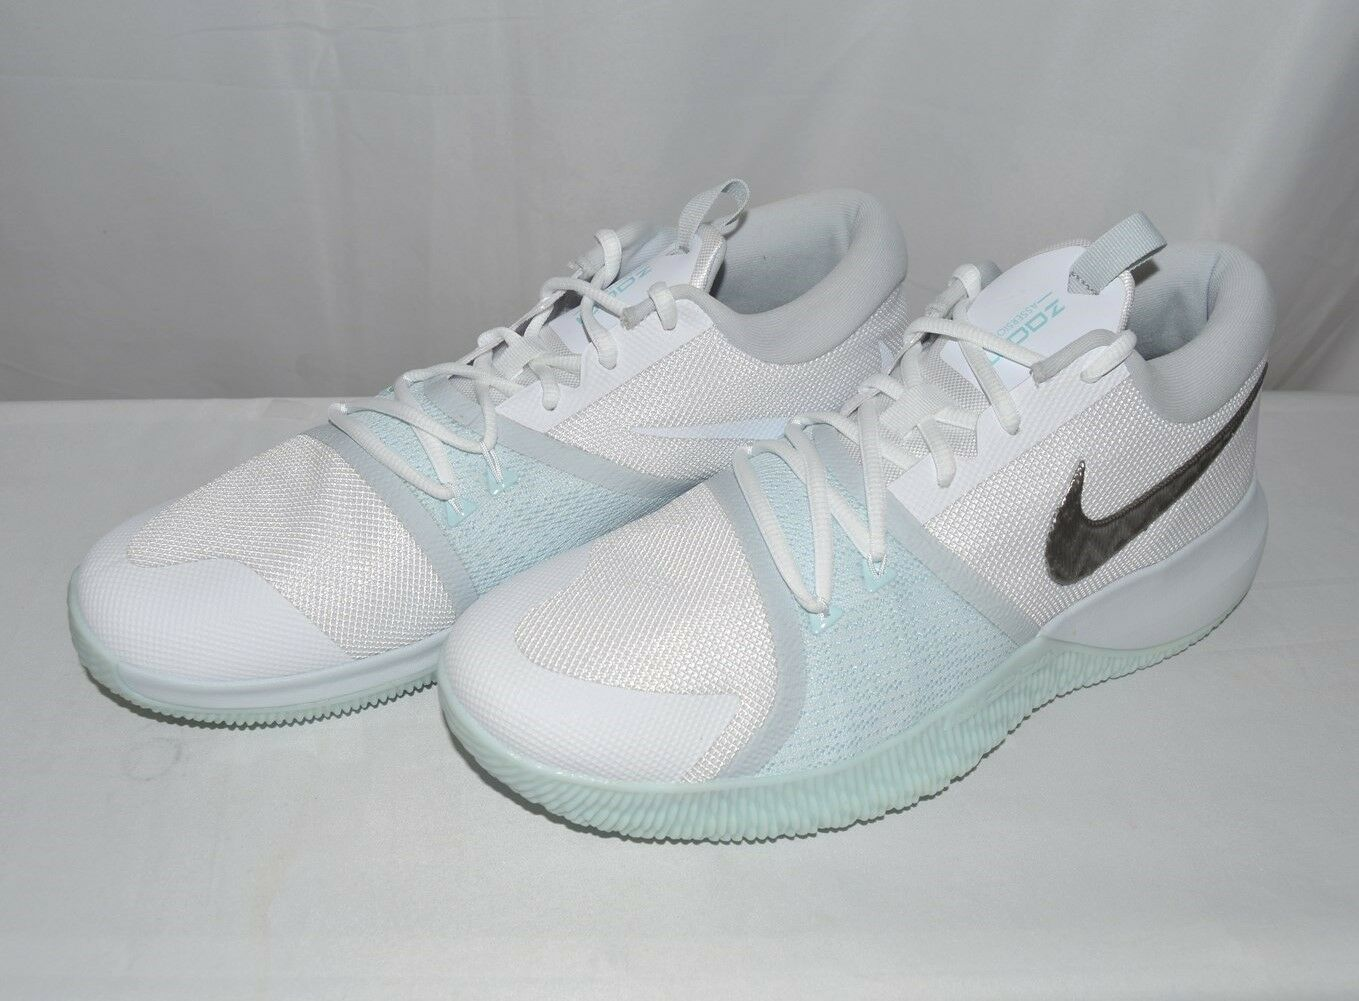 Nike Men's Zoom Assersion Basketball Shoes 917505 104 White/Glacier, Pre-Owned